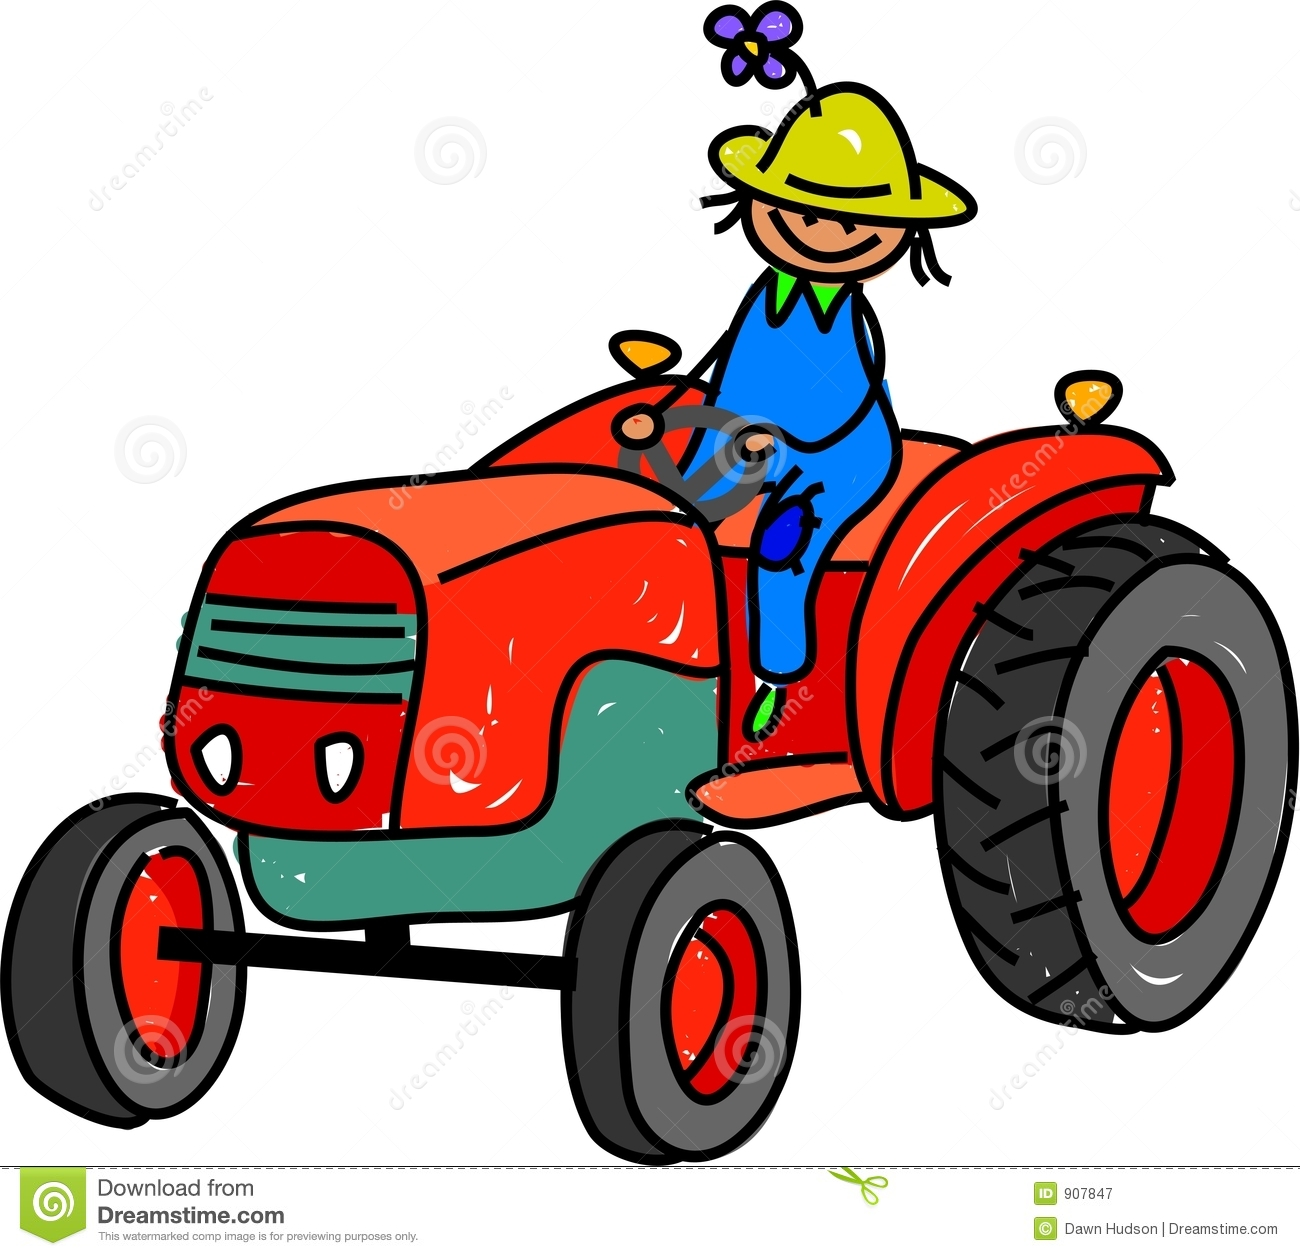 Farm Tractor Clipart at GetDrawings.com.